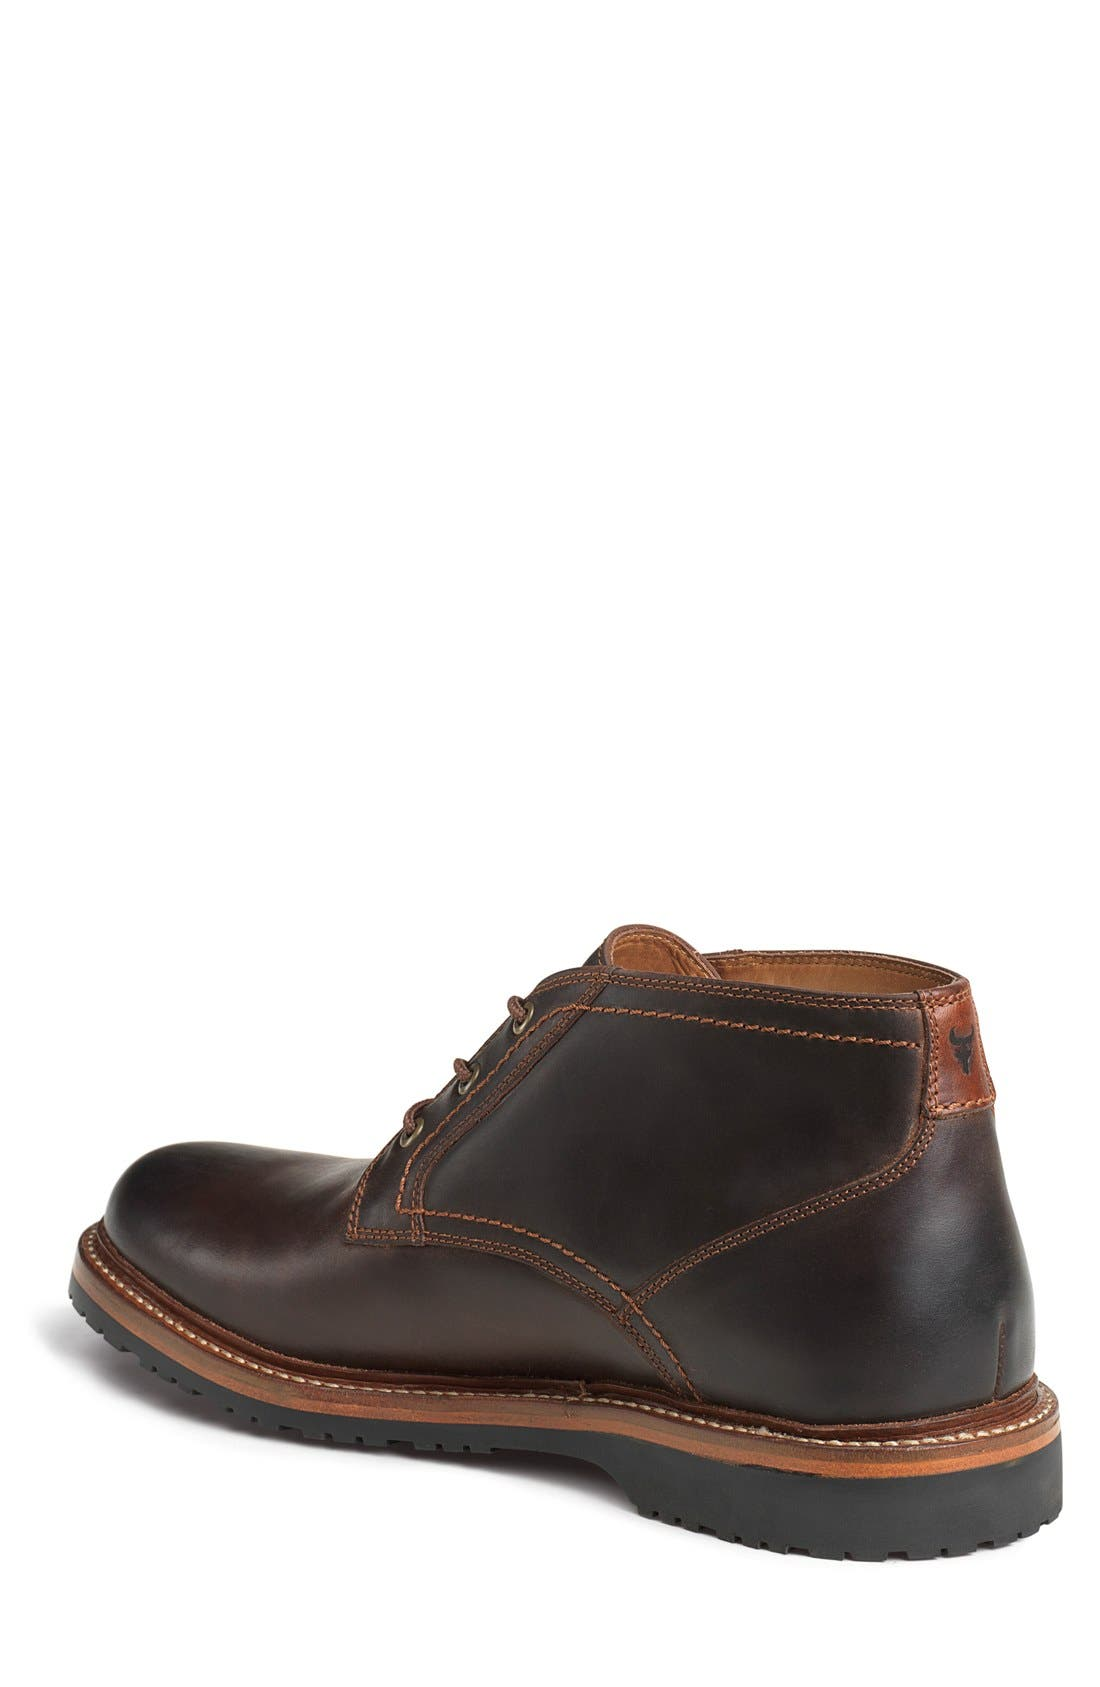 TRASK, Arlington Chukka Boot, Alternate thumbnail 6, color, BROWN